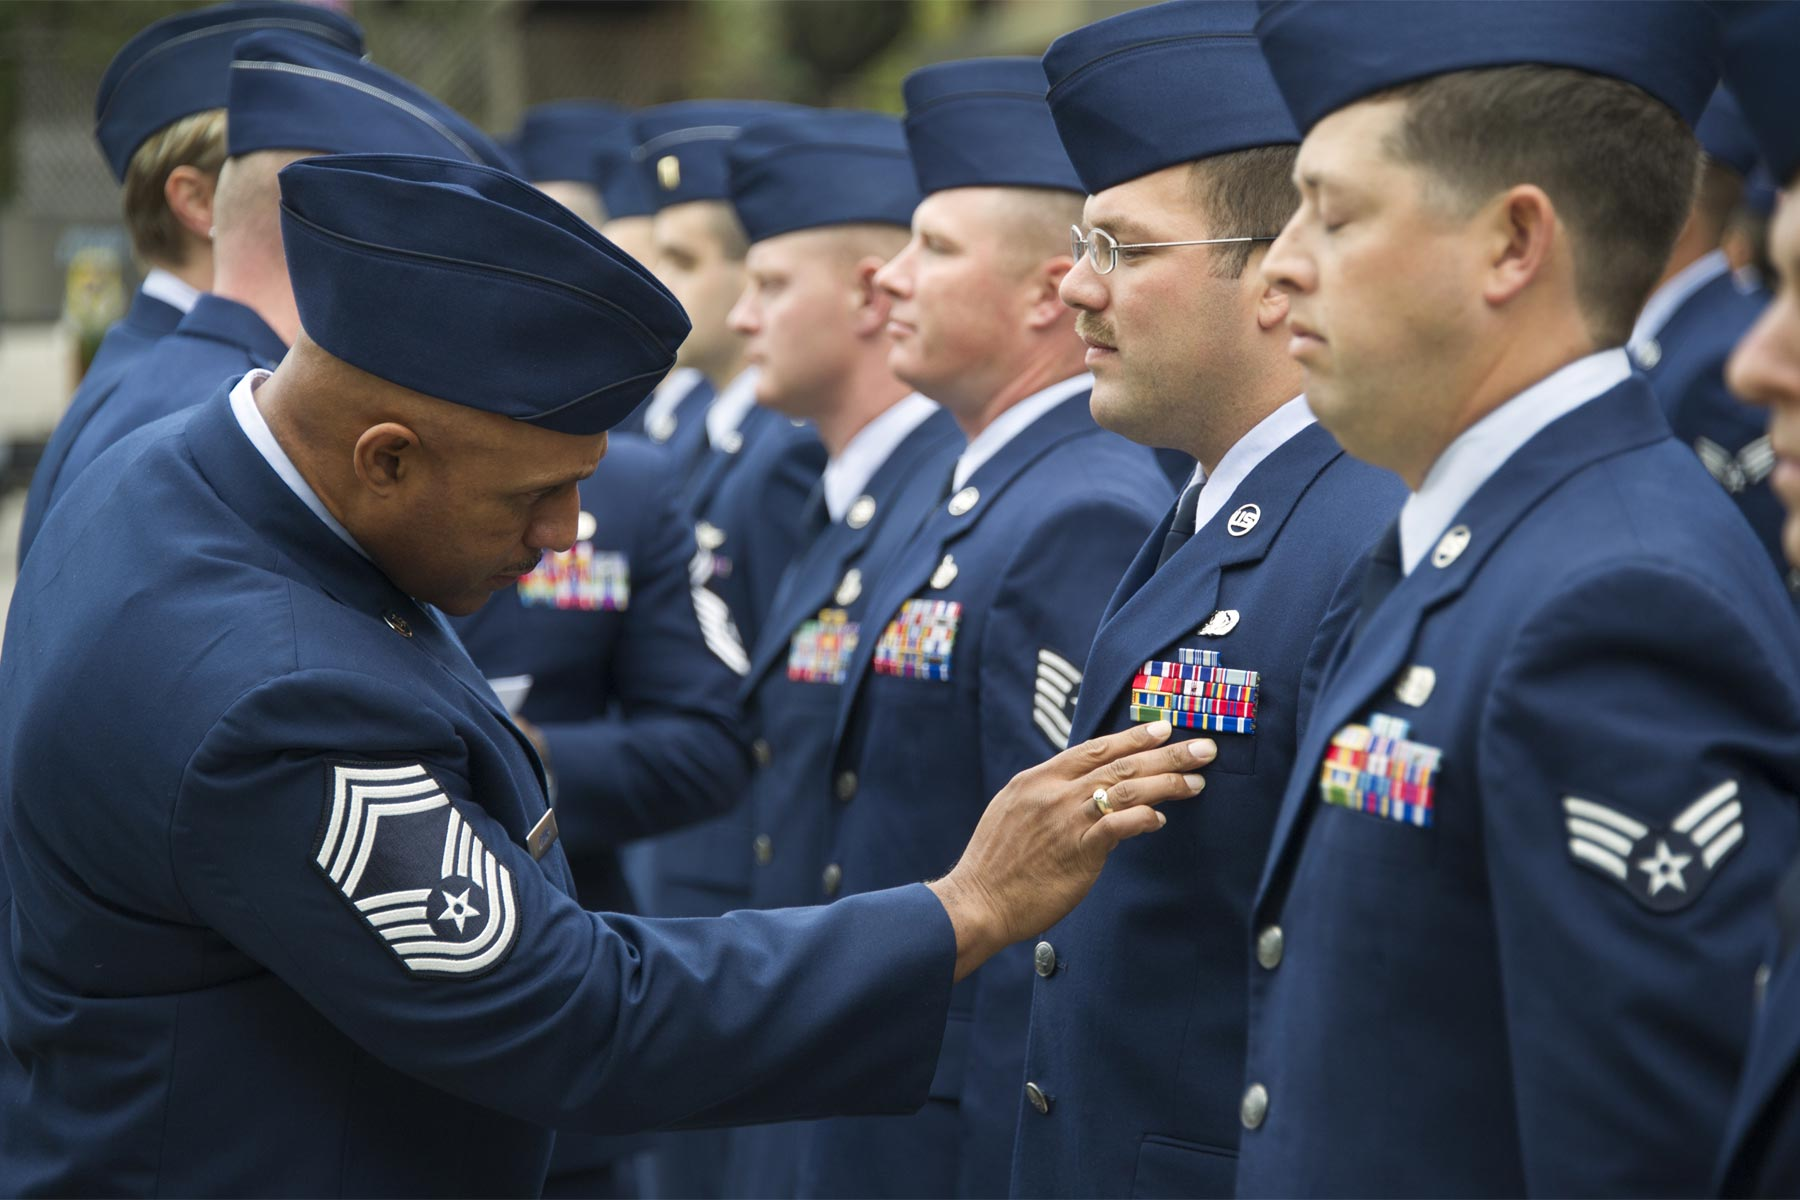 Air Force May Go Old School With Dress Blue Uniform Update